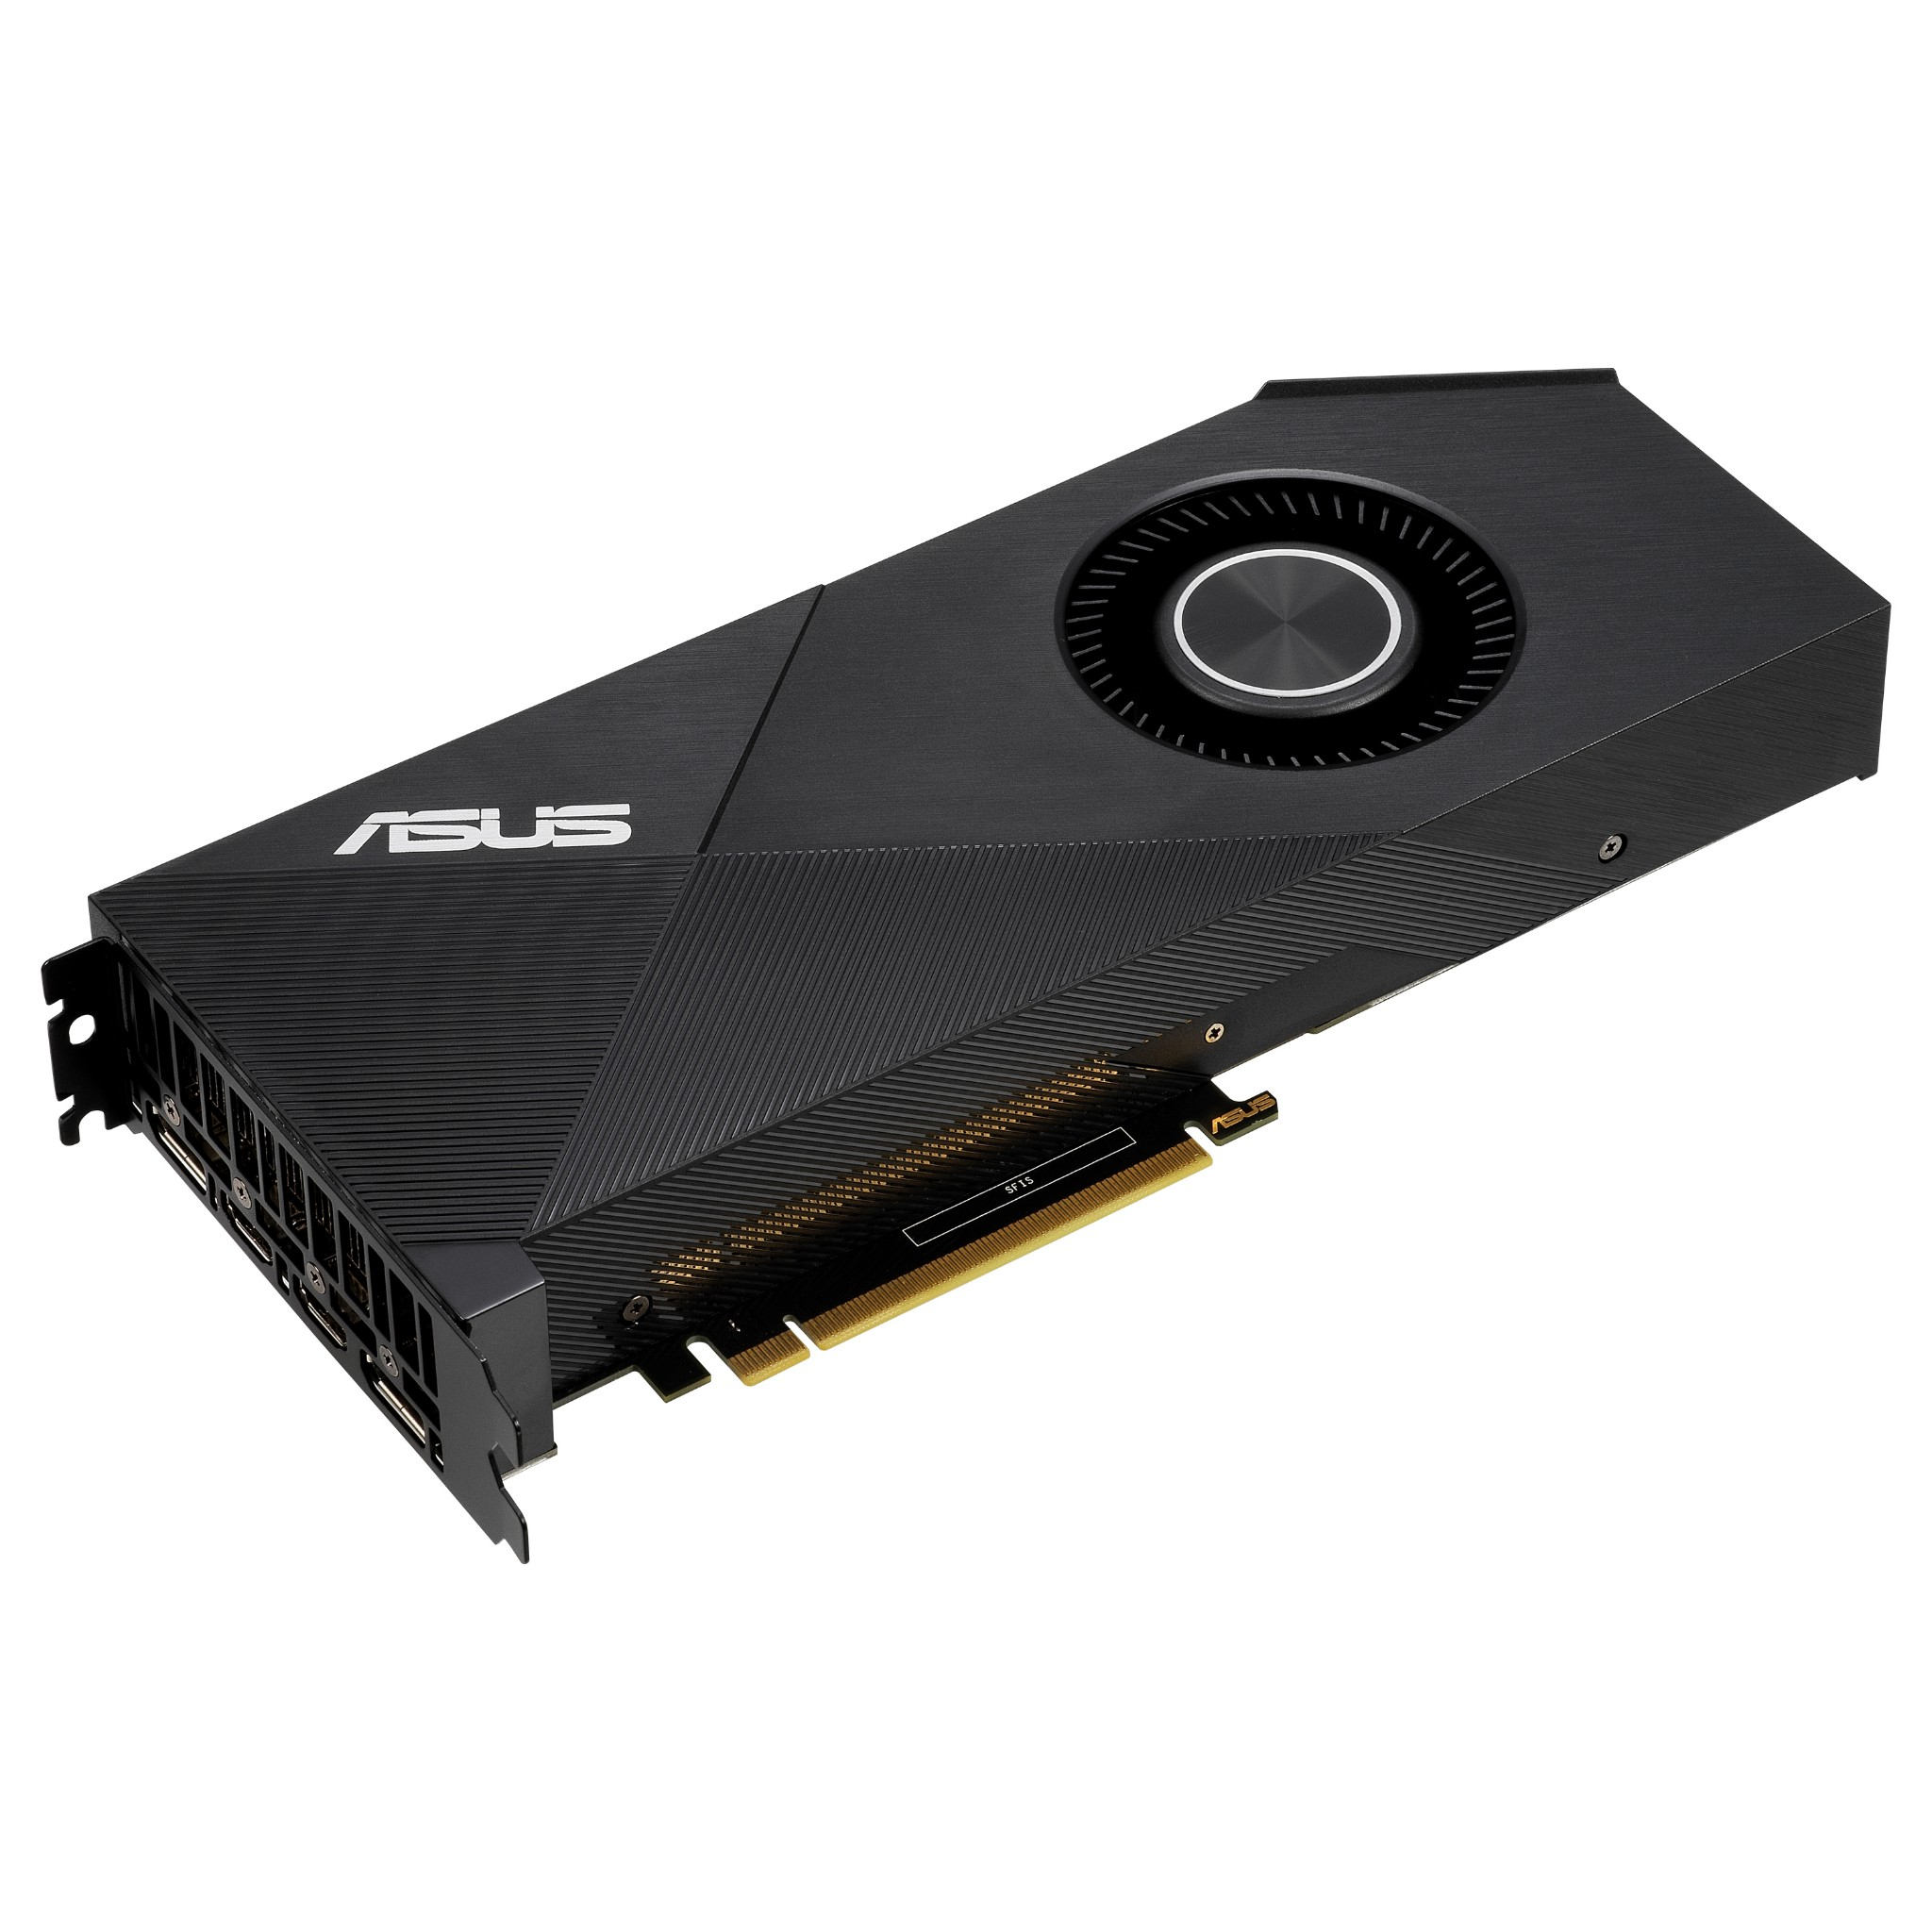 ASUS Turbo GeForce RTX™ 2060 6GB GDDR6